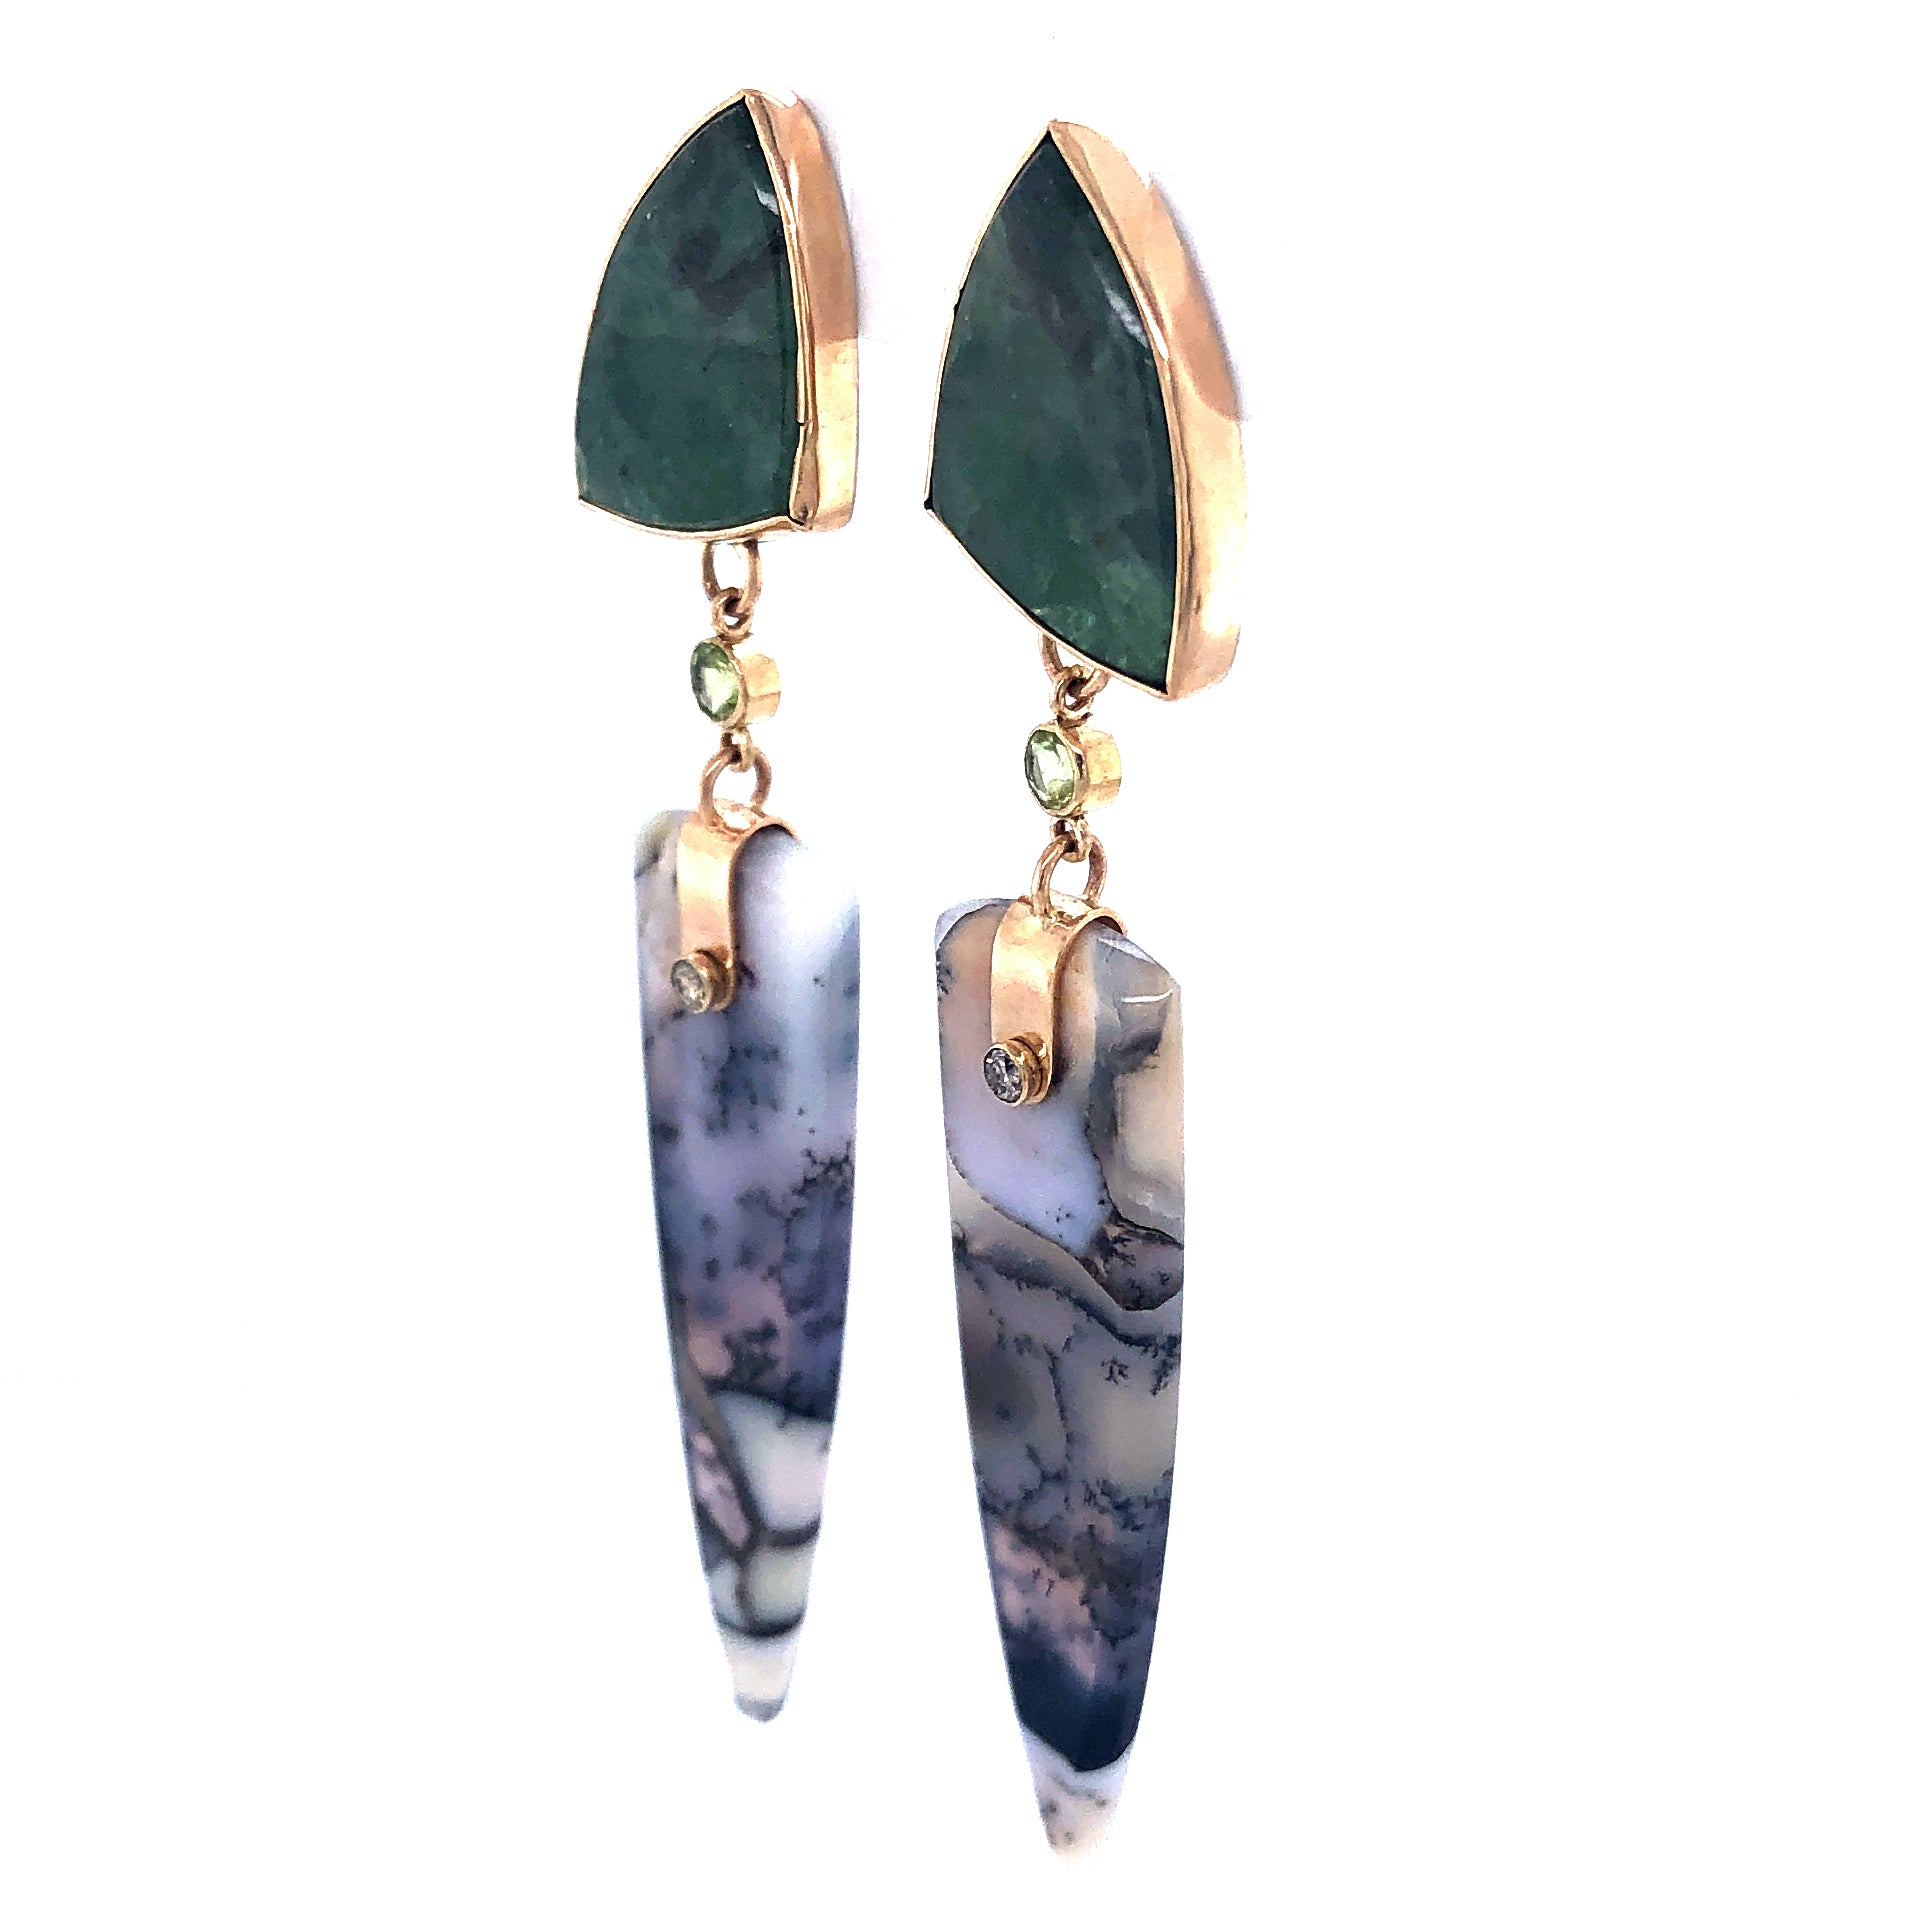 Emerald, Peridot, Dendritic Opal Earrings, Handmade 14k Gold